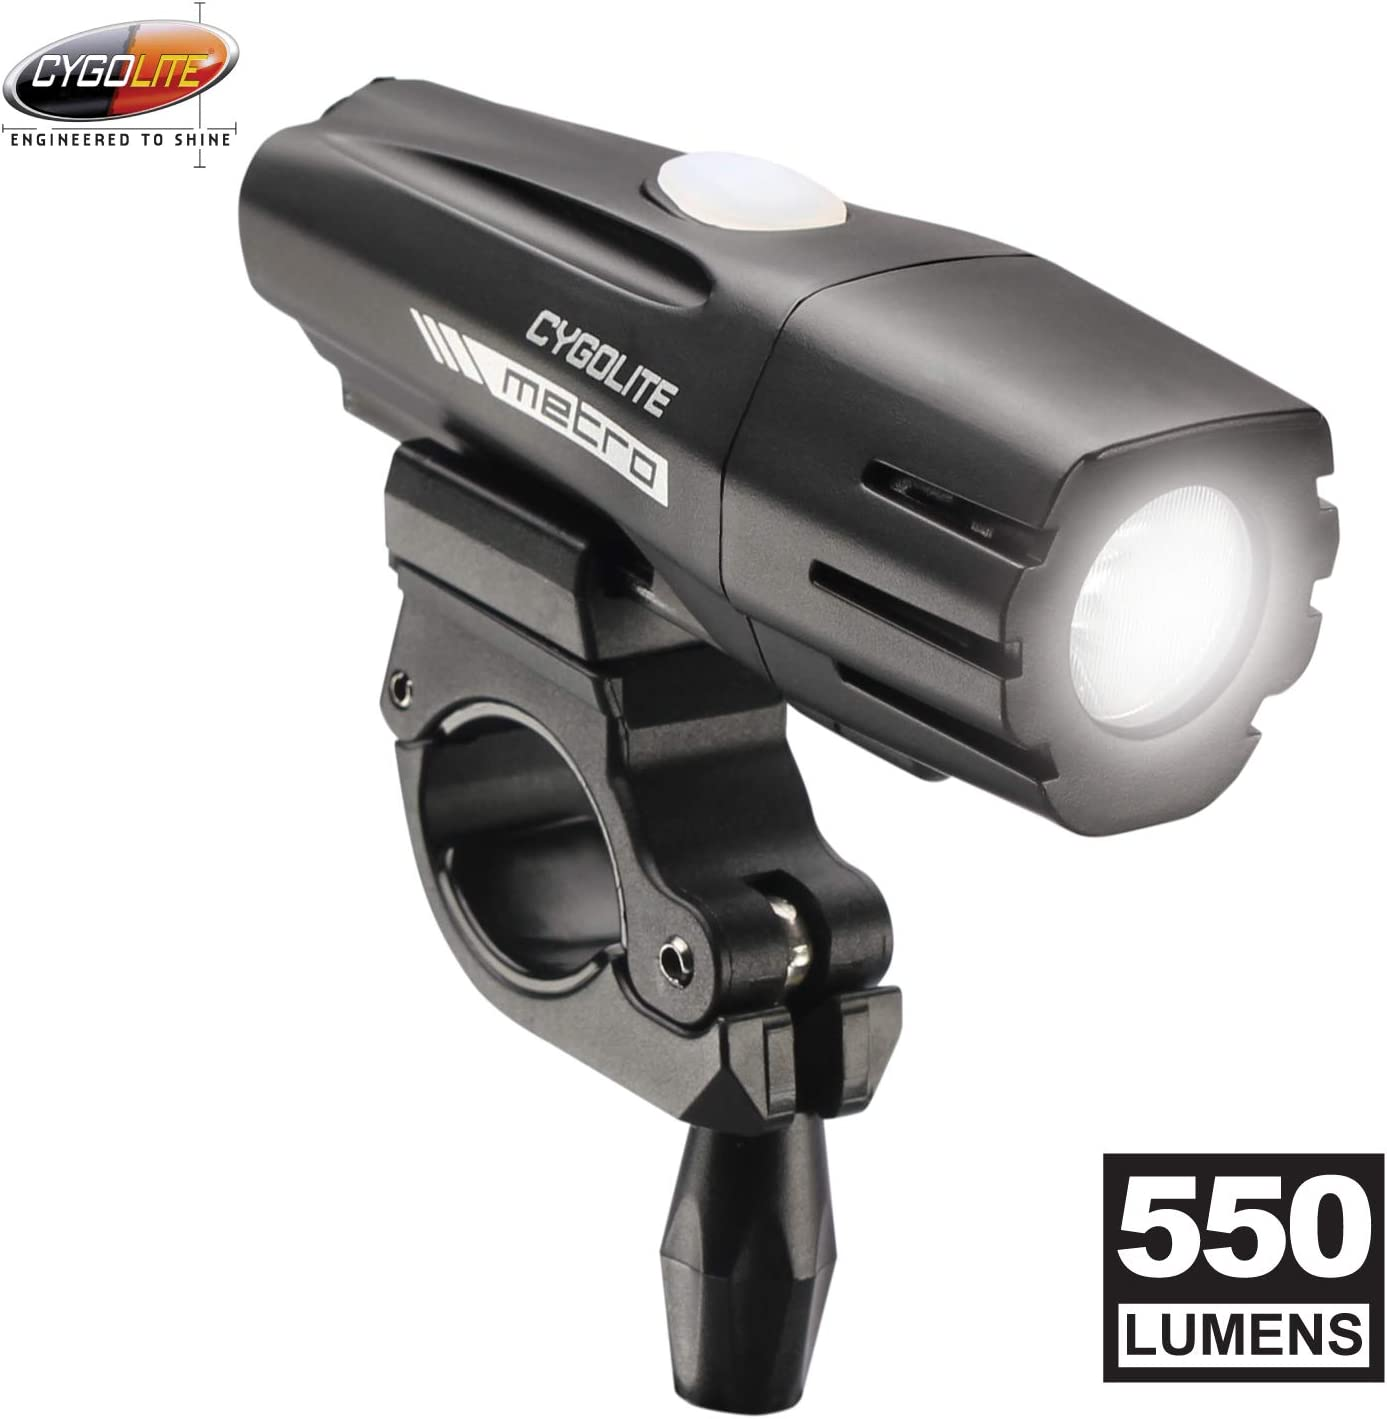 Cygolite Metro 550 Lumen Bike Light 4 Night Modes Daytime Flash Mode Compact Durable IP67 Waterproof Secured Hard Mount USB Rechargeable Headlight for Road Commuter Bicycles